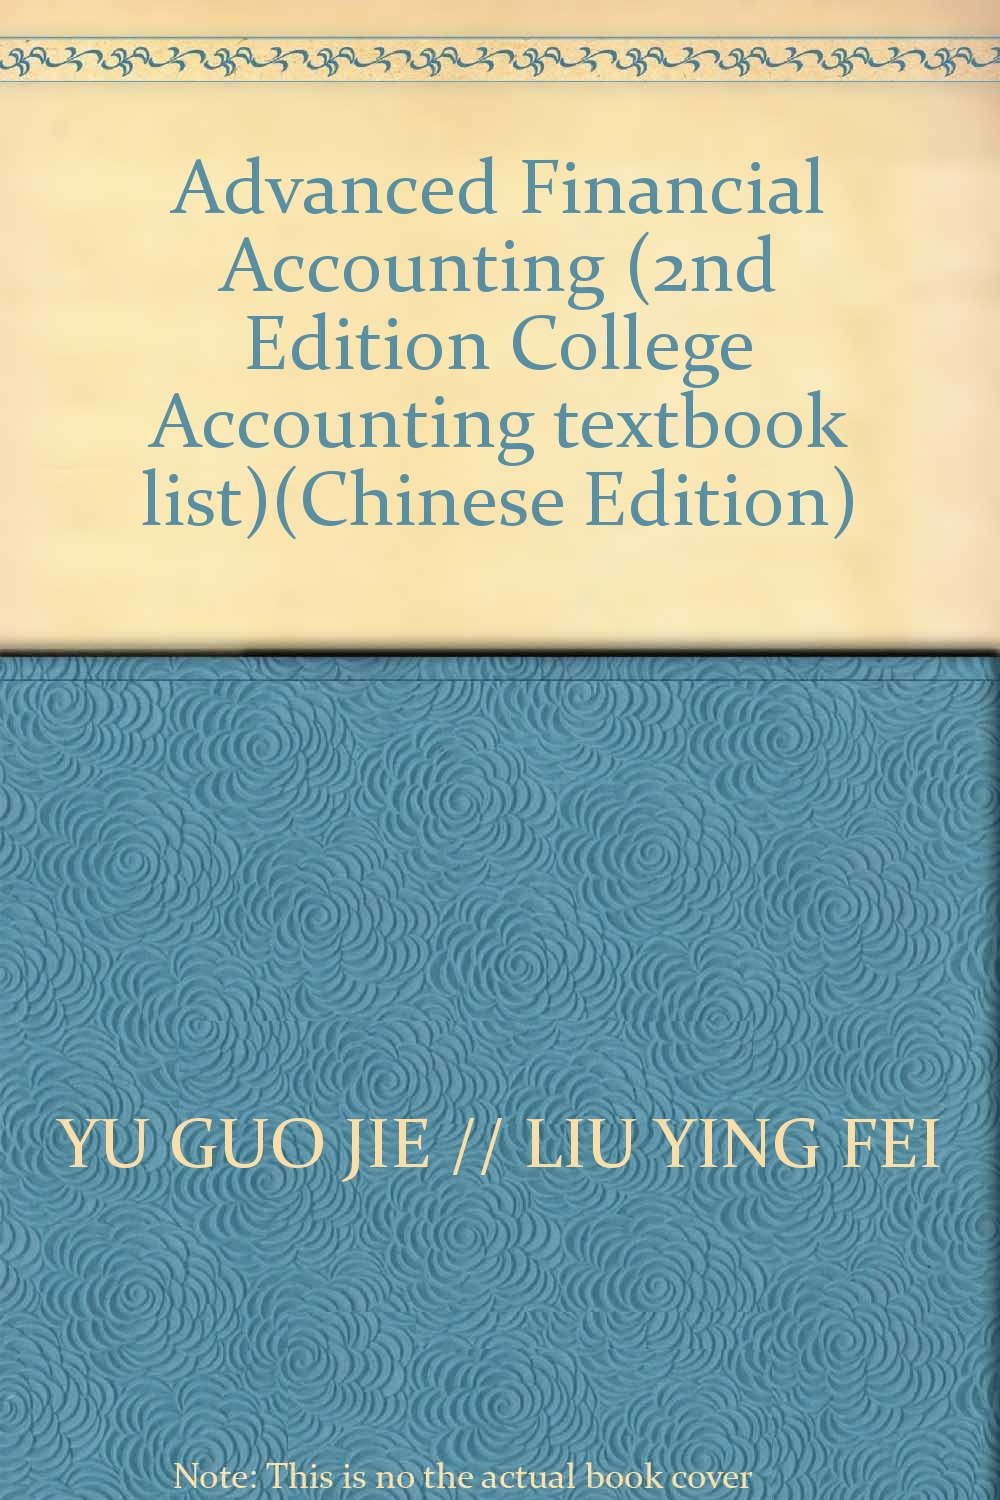 Advanced Financial Accounting (2nd Edition College Accounting textbook  list)(Chinese Edition): YU GUO JIE: 9787307084049: Amazon.com: Books